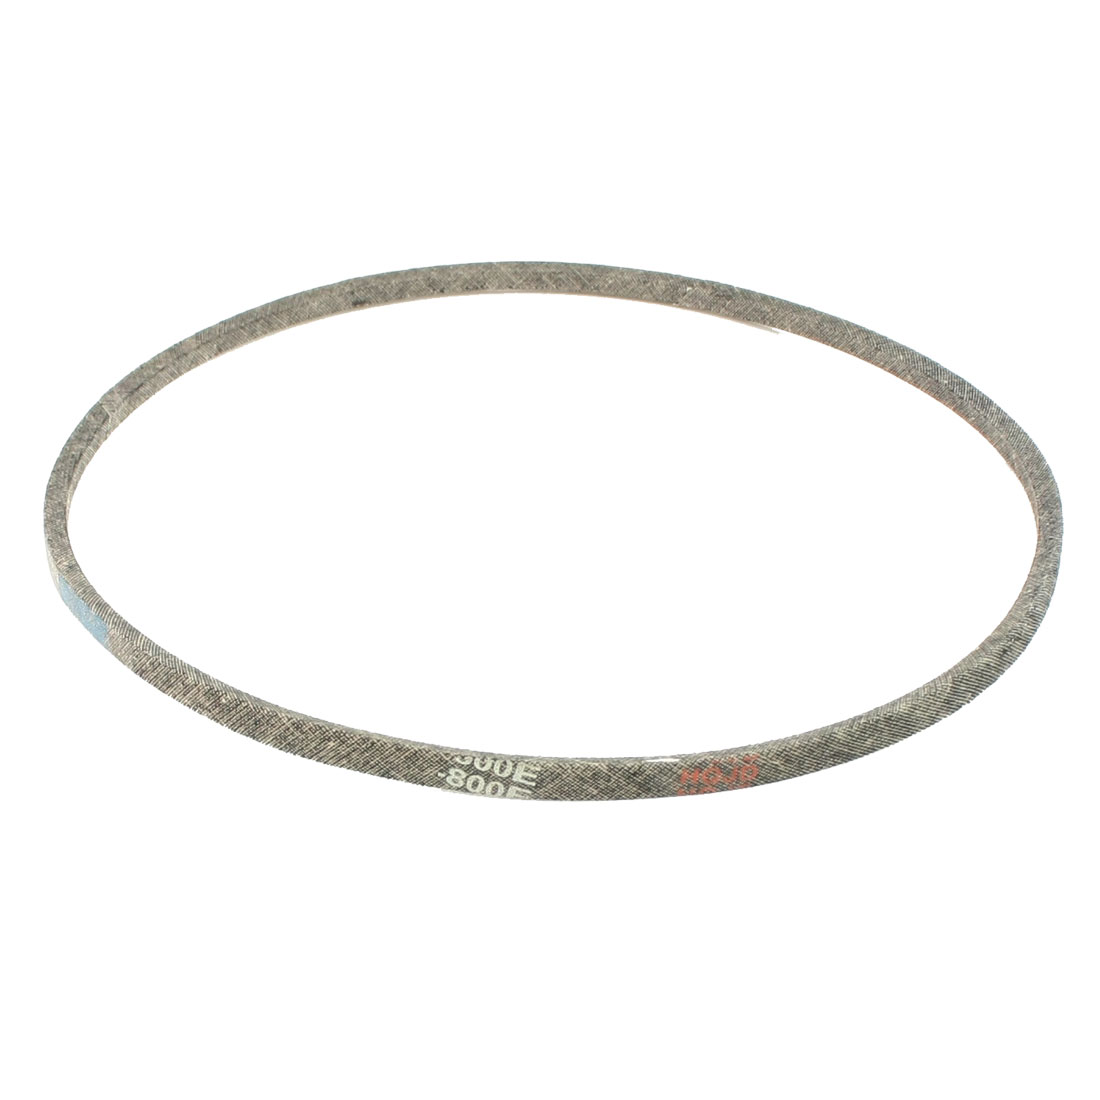 O-800E Washing Machine Motor Rubber Band V Belt Fit Girth 800mm